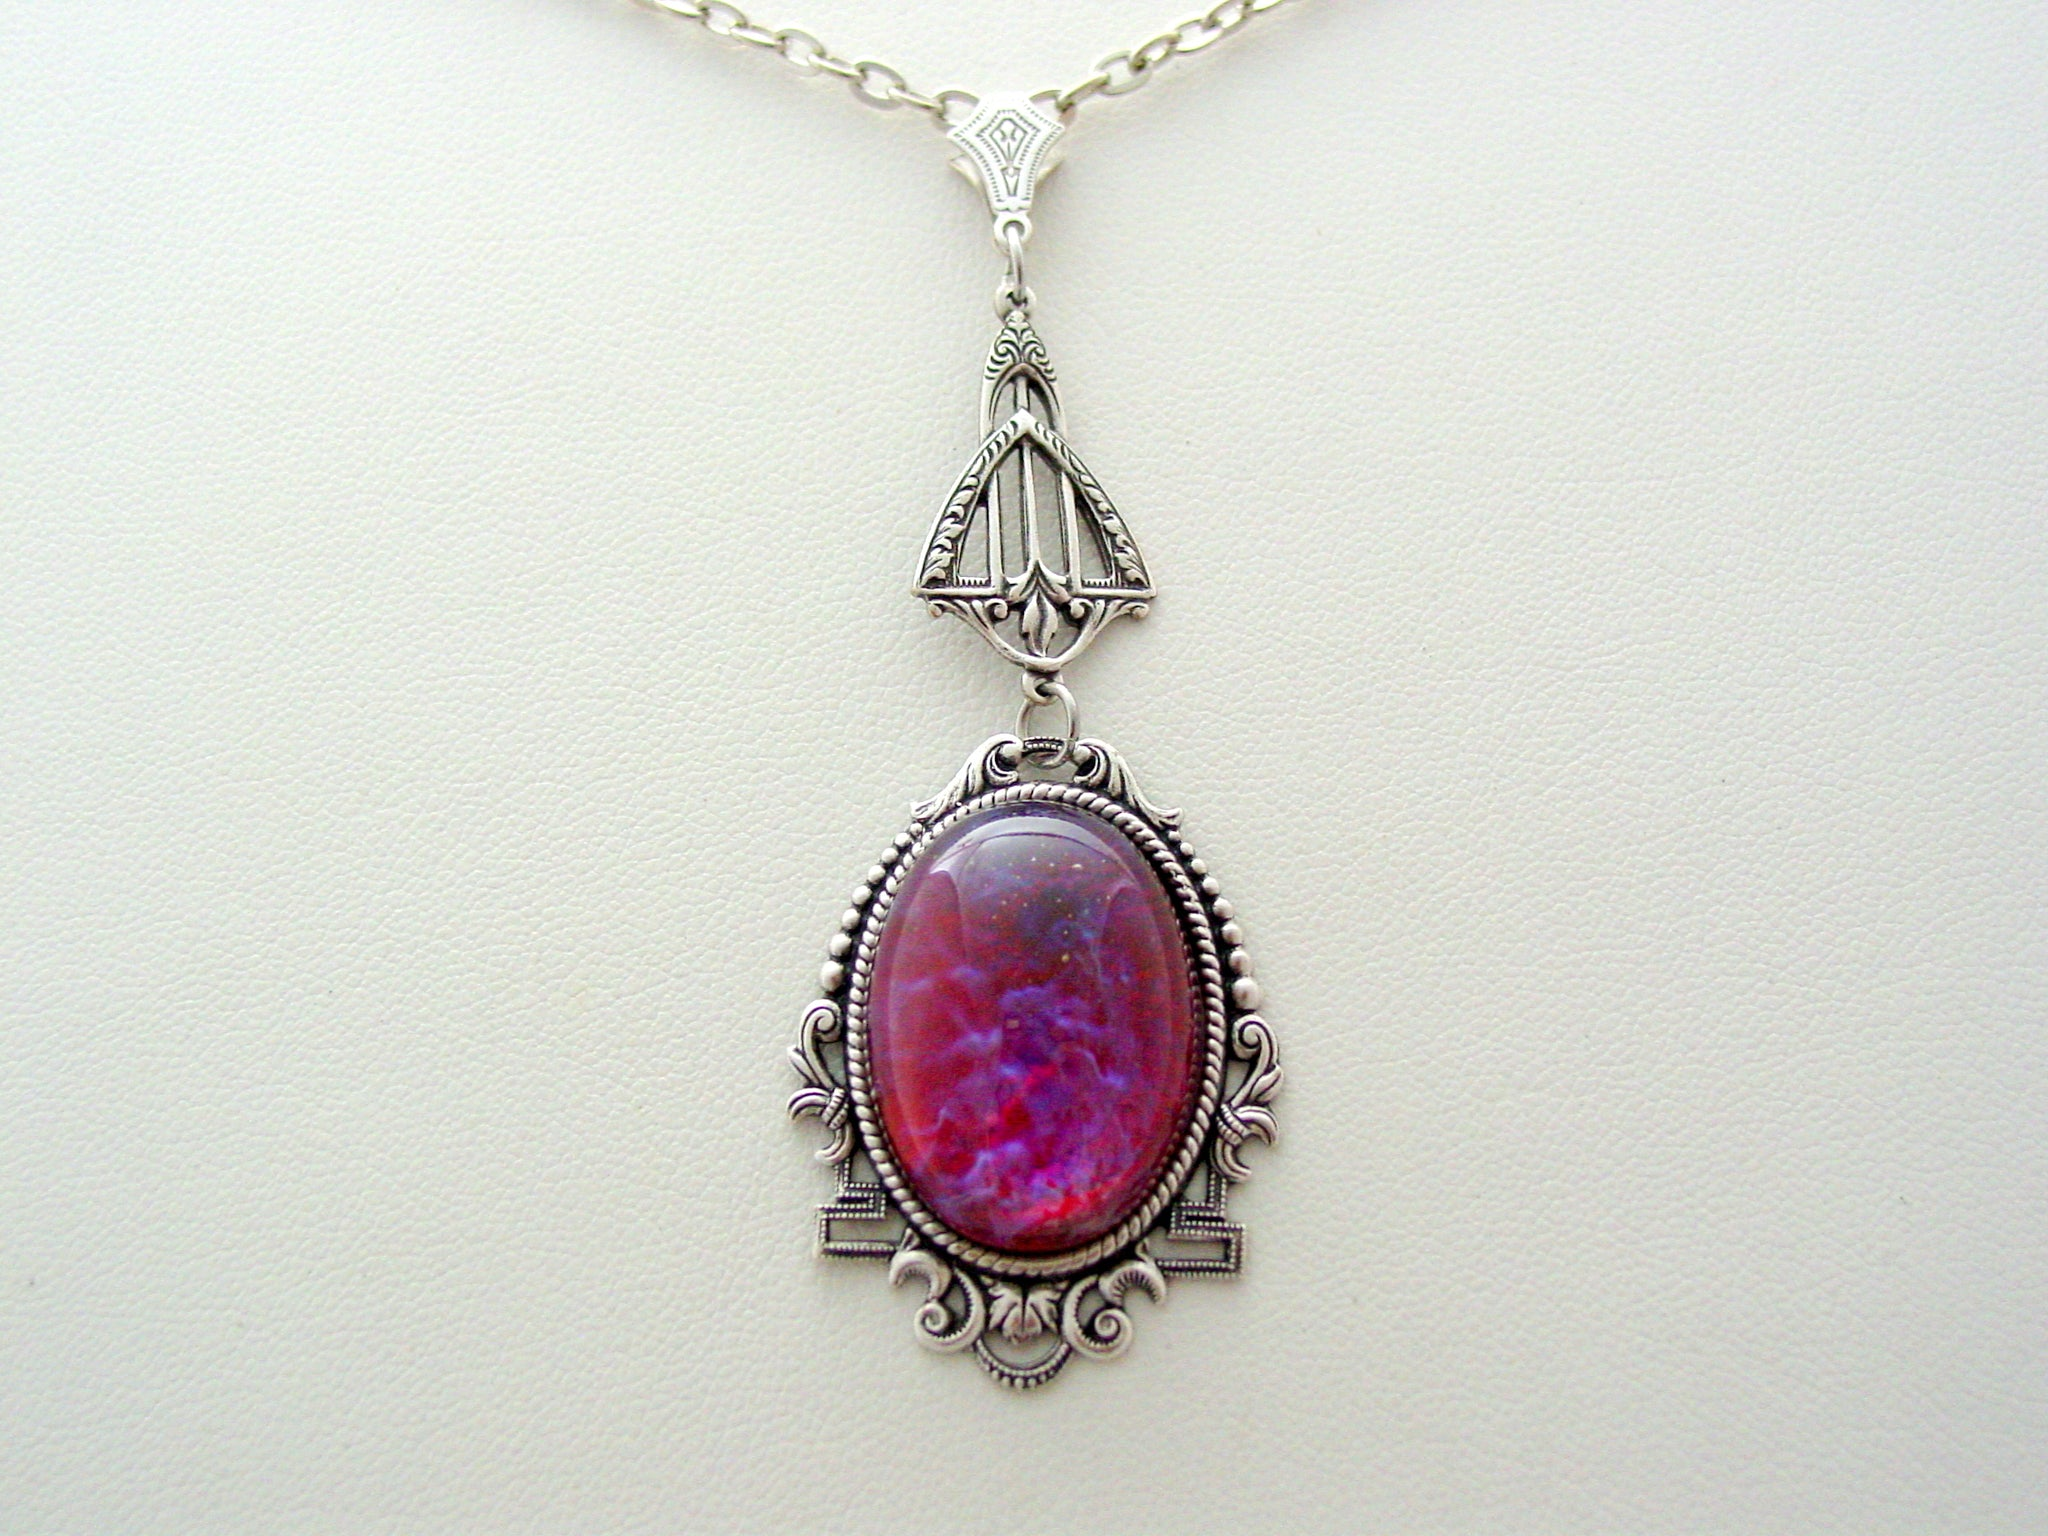 Dragons Breath Art Deco Necklace, Mexican Fire Opal Pendant, Art Deco Drop Necklace